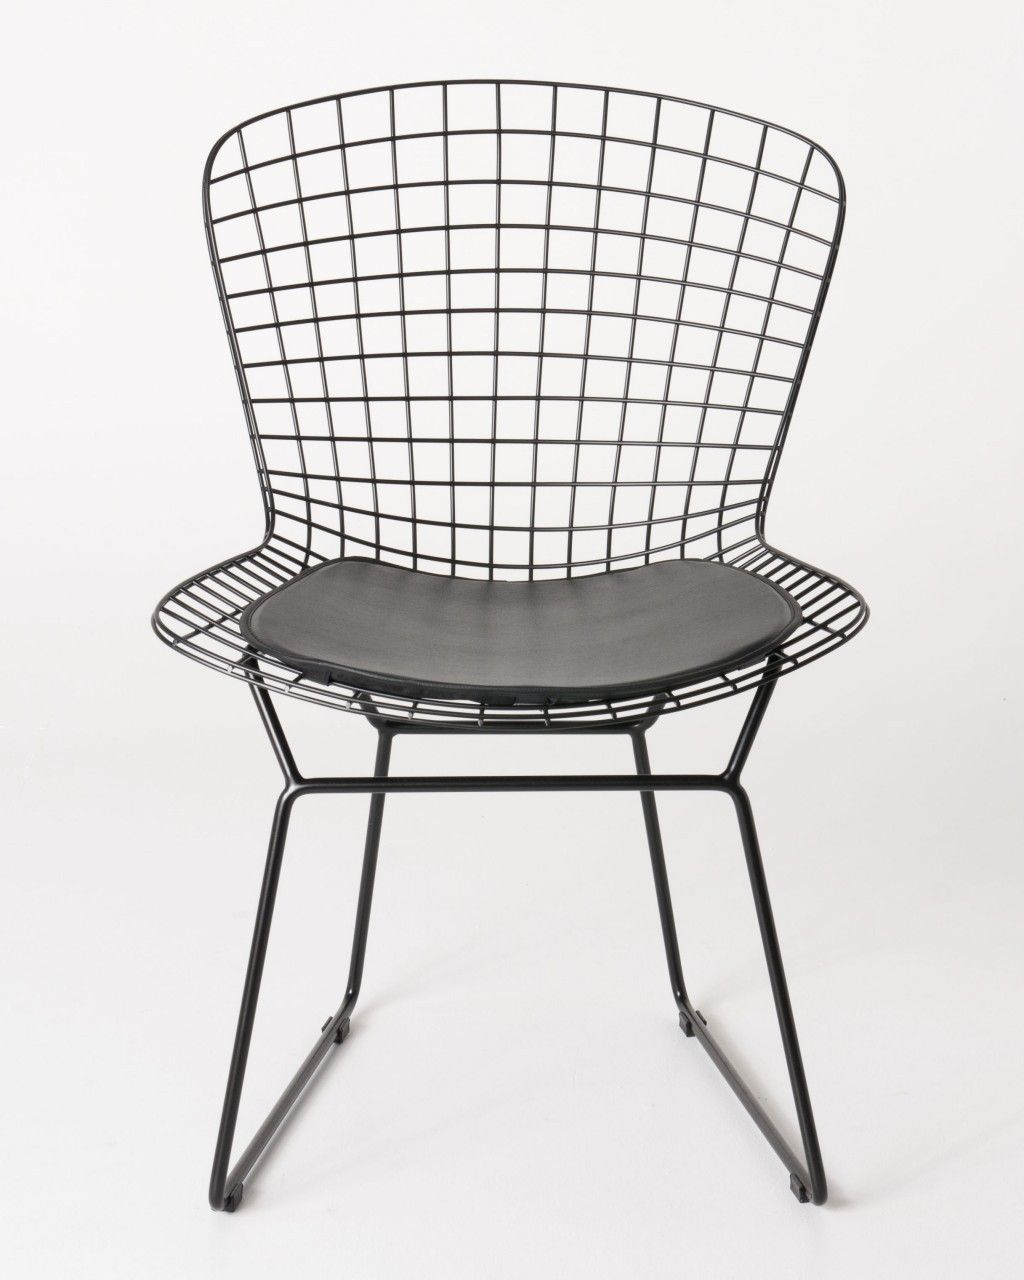 Replica Harry Bertoia Bird Chair Black Powdercoated With Black Seat Cushion  Only